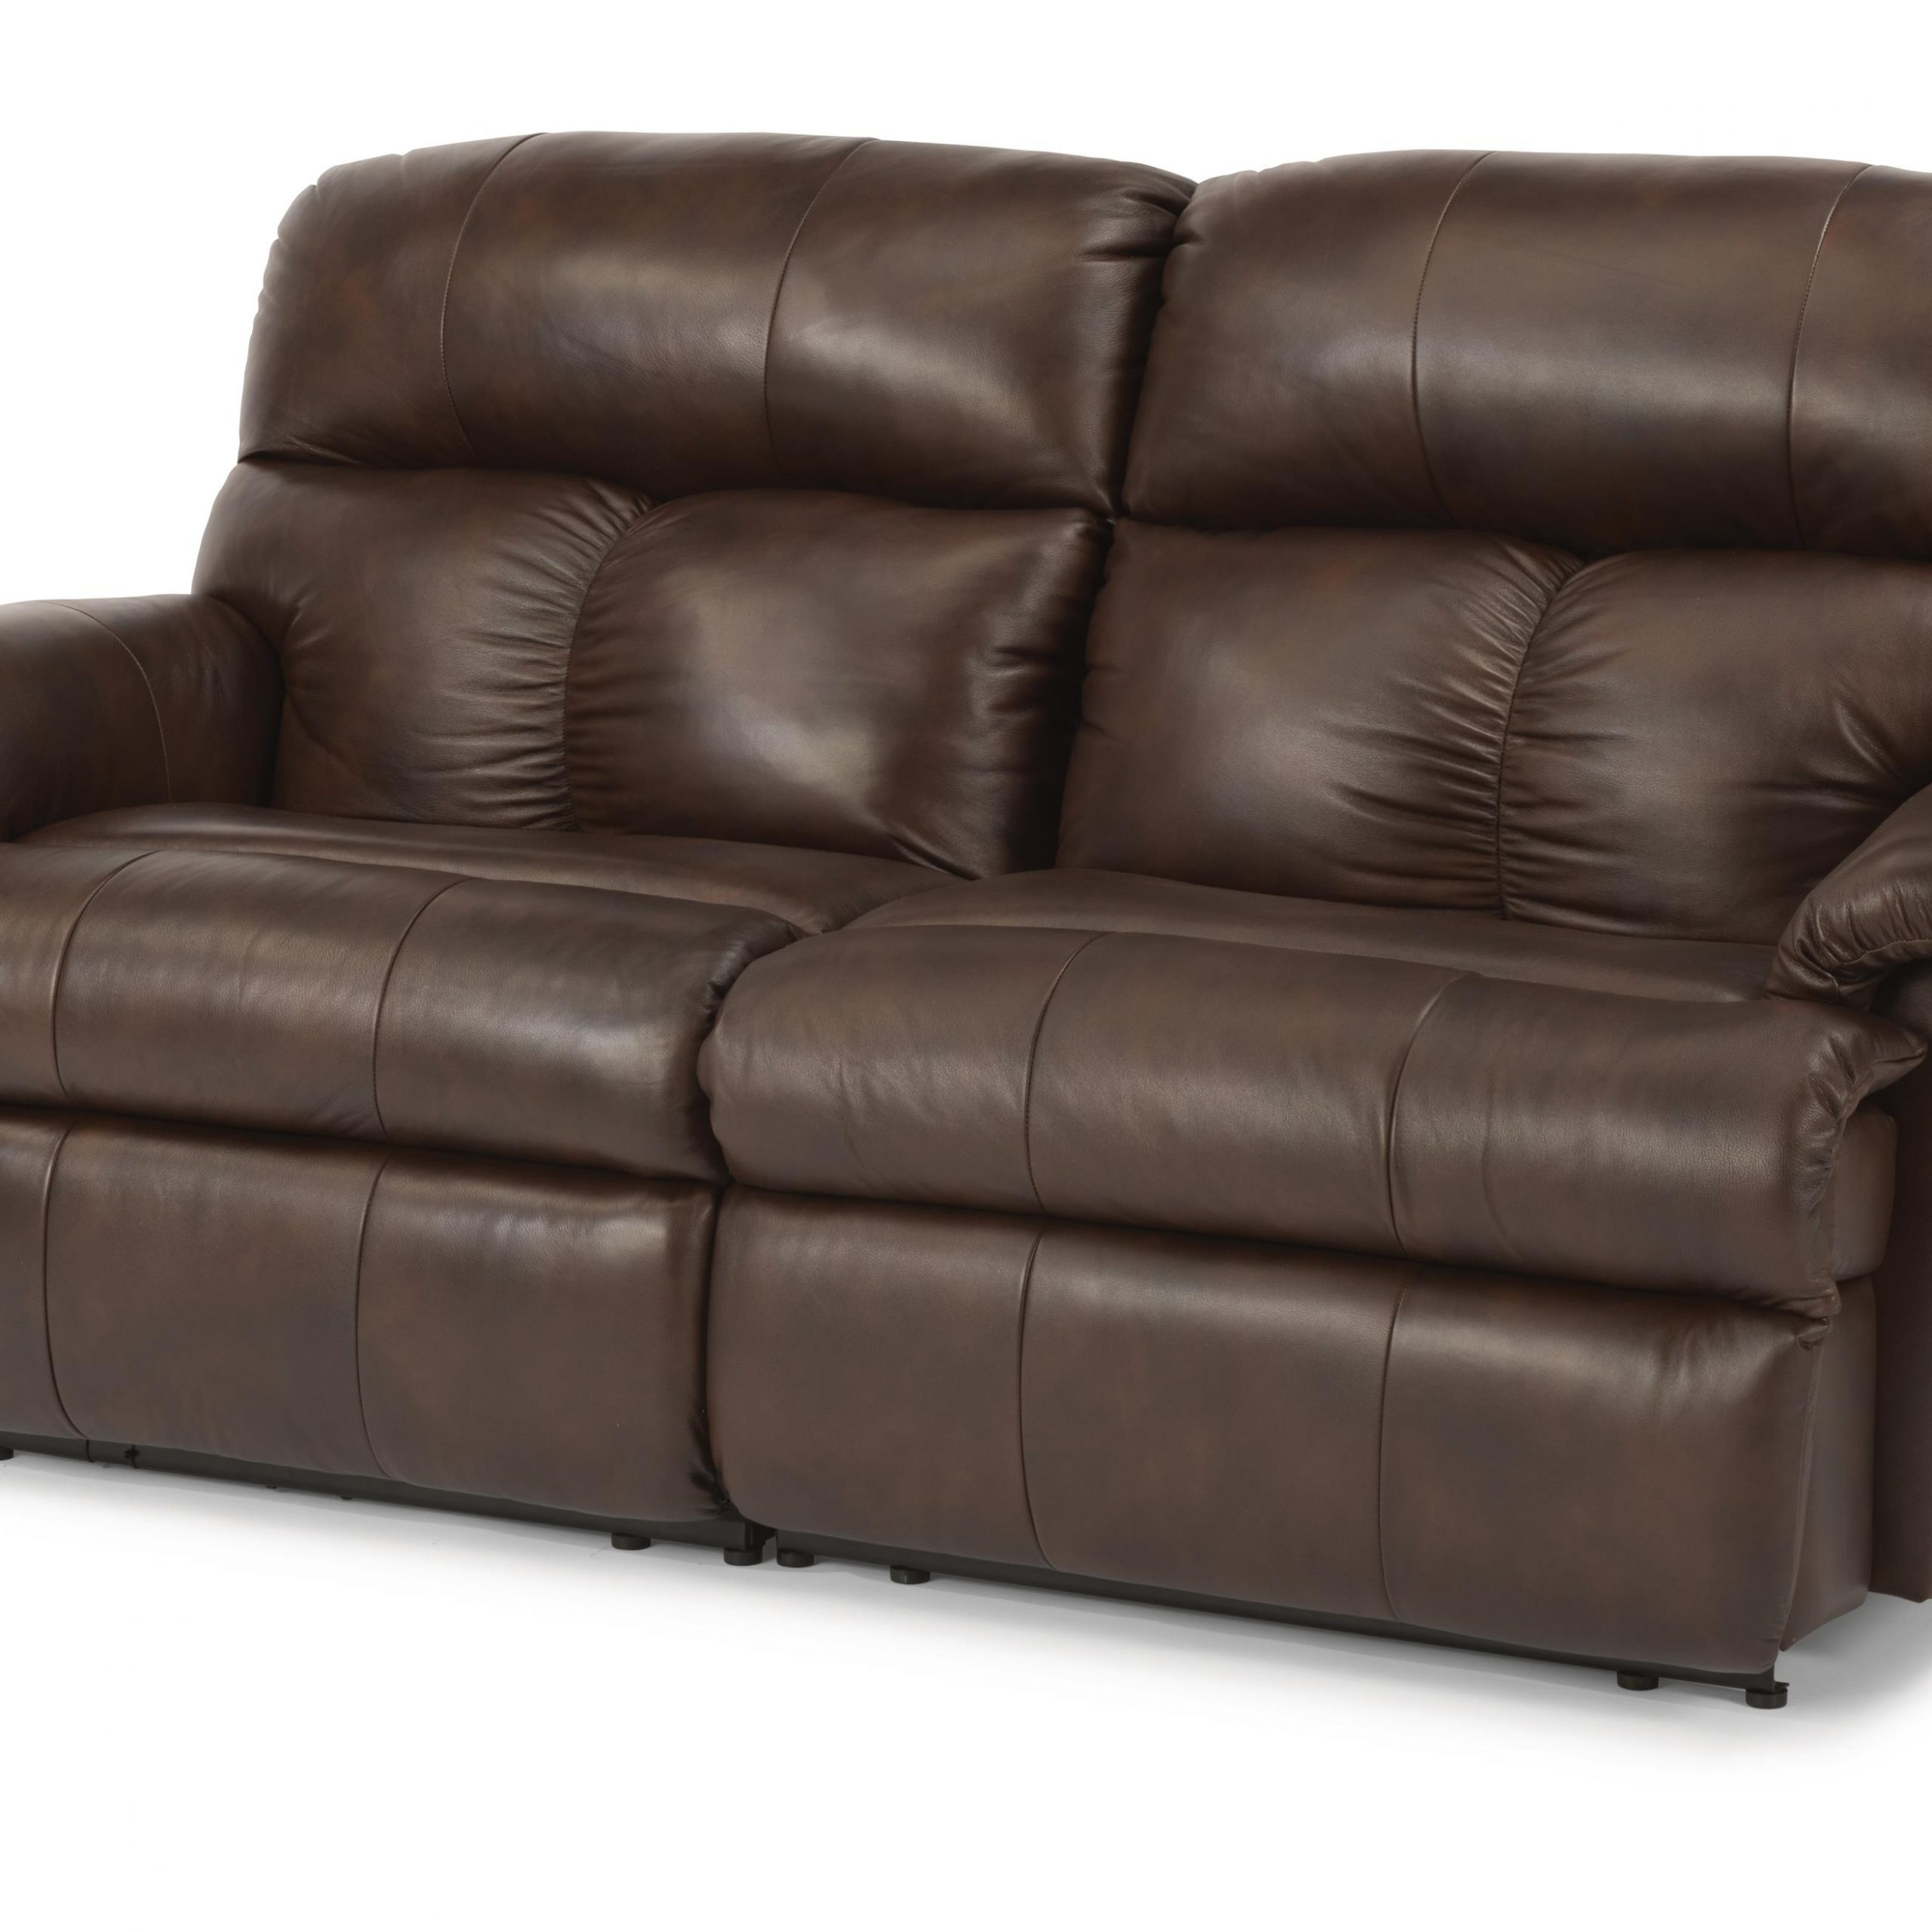 Flexsteel Triton 3098 61m Casual Power Reclining Studio In Well Known Power Reclining Sofas (View 9 of 20)